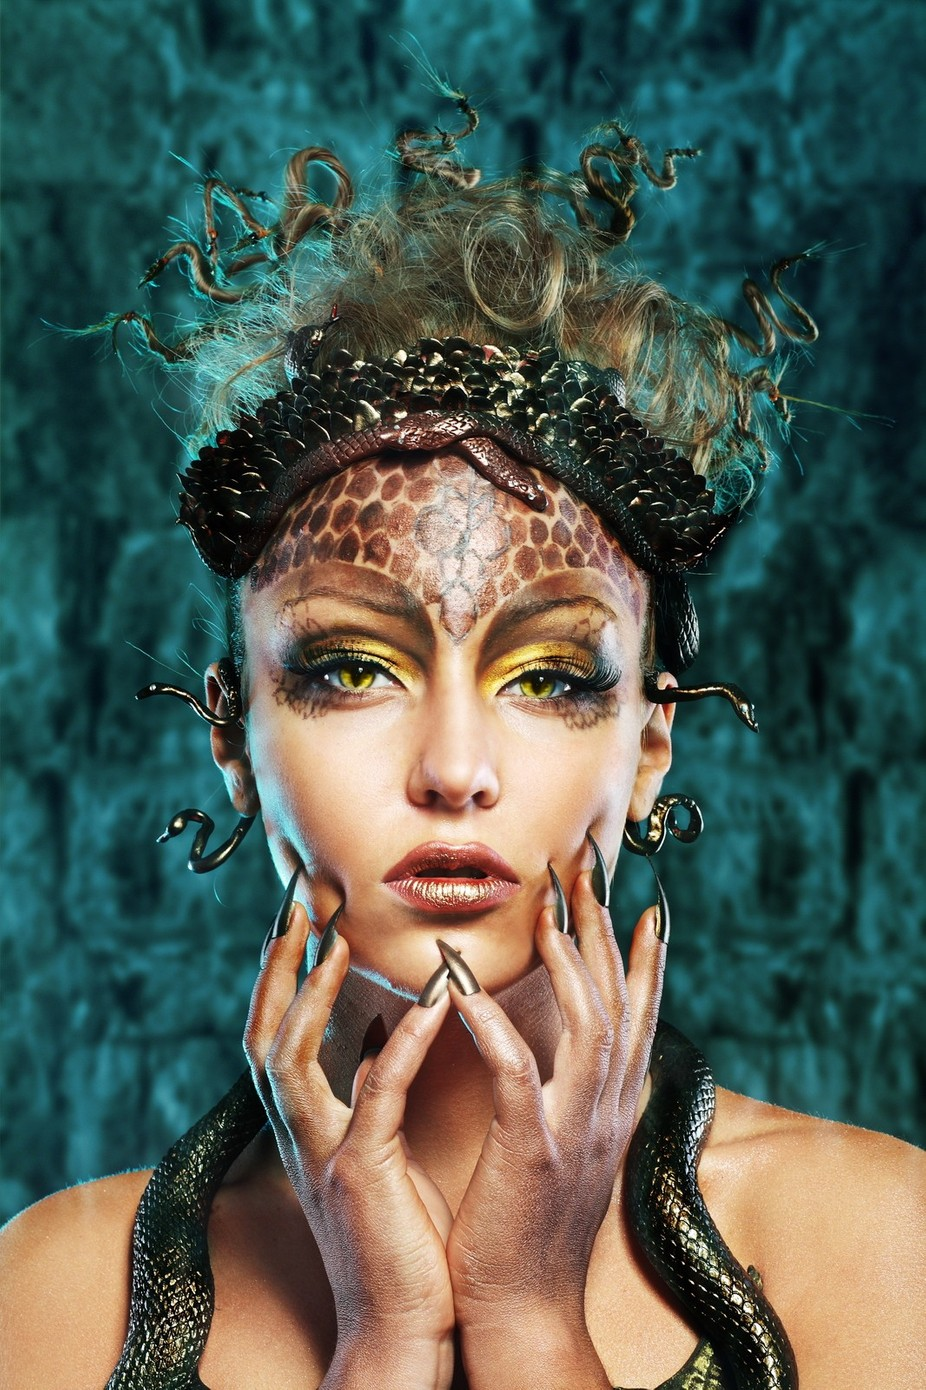 Gorgon girl in dungeon by olenazaskochenko - The Magic Of Editing Photo Contest